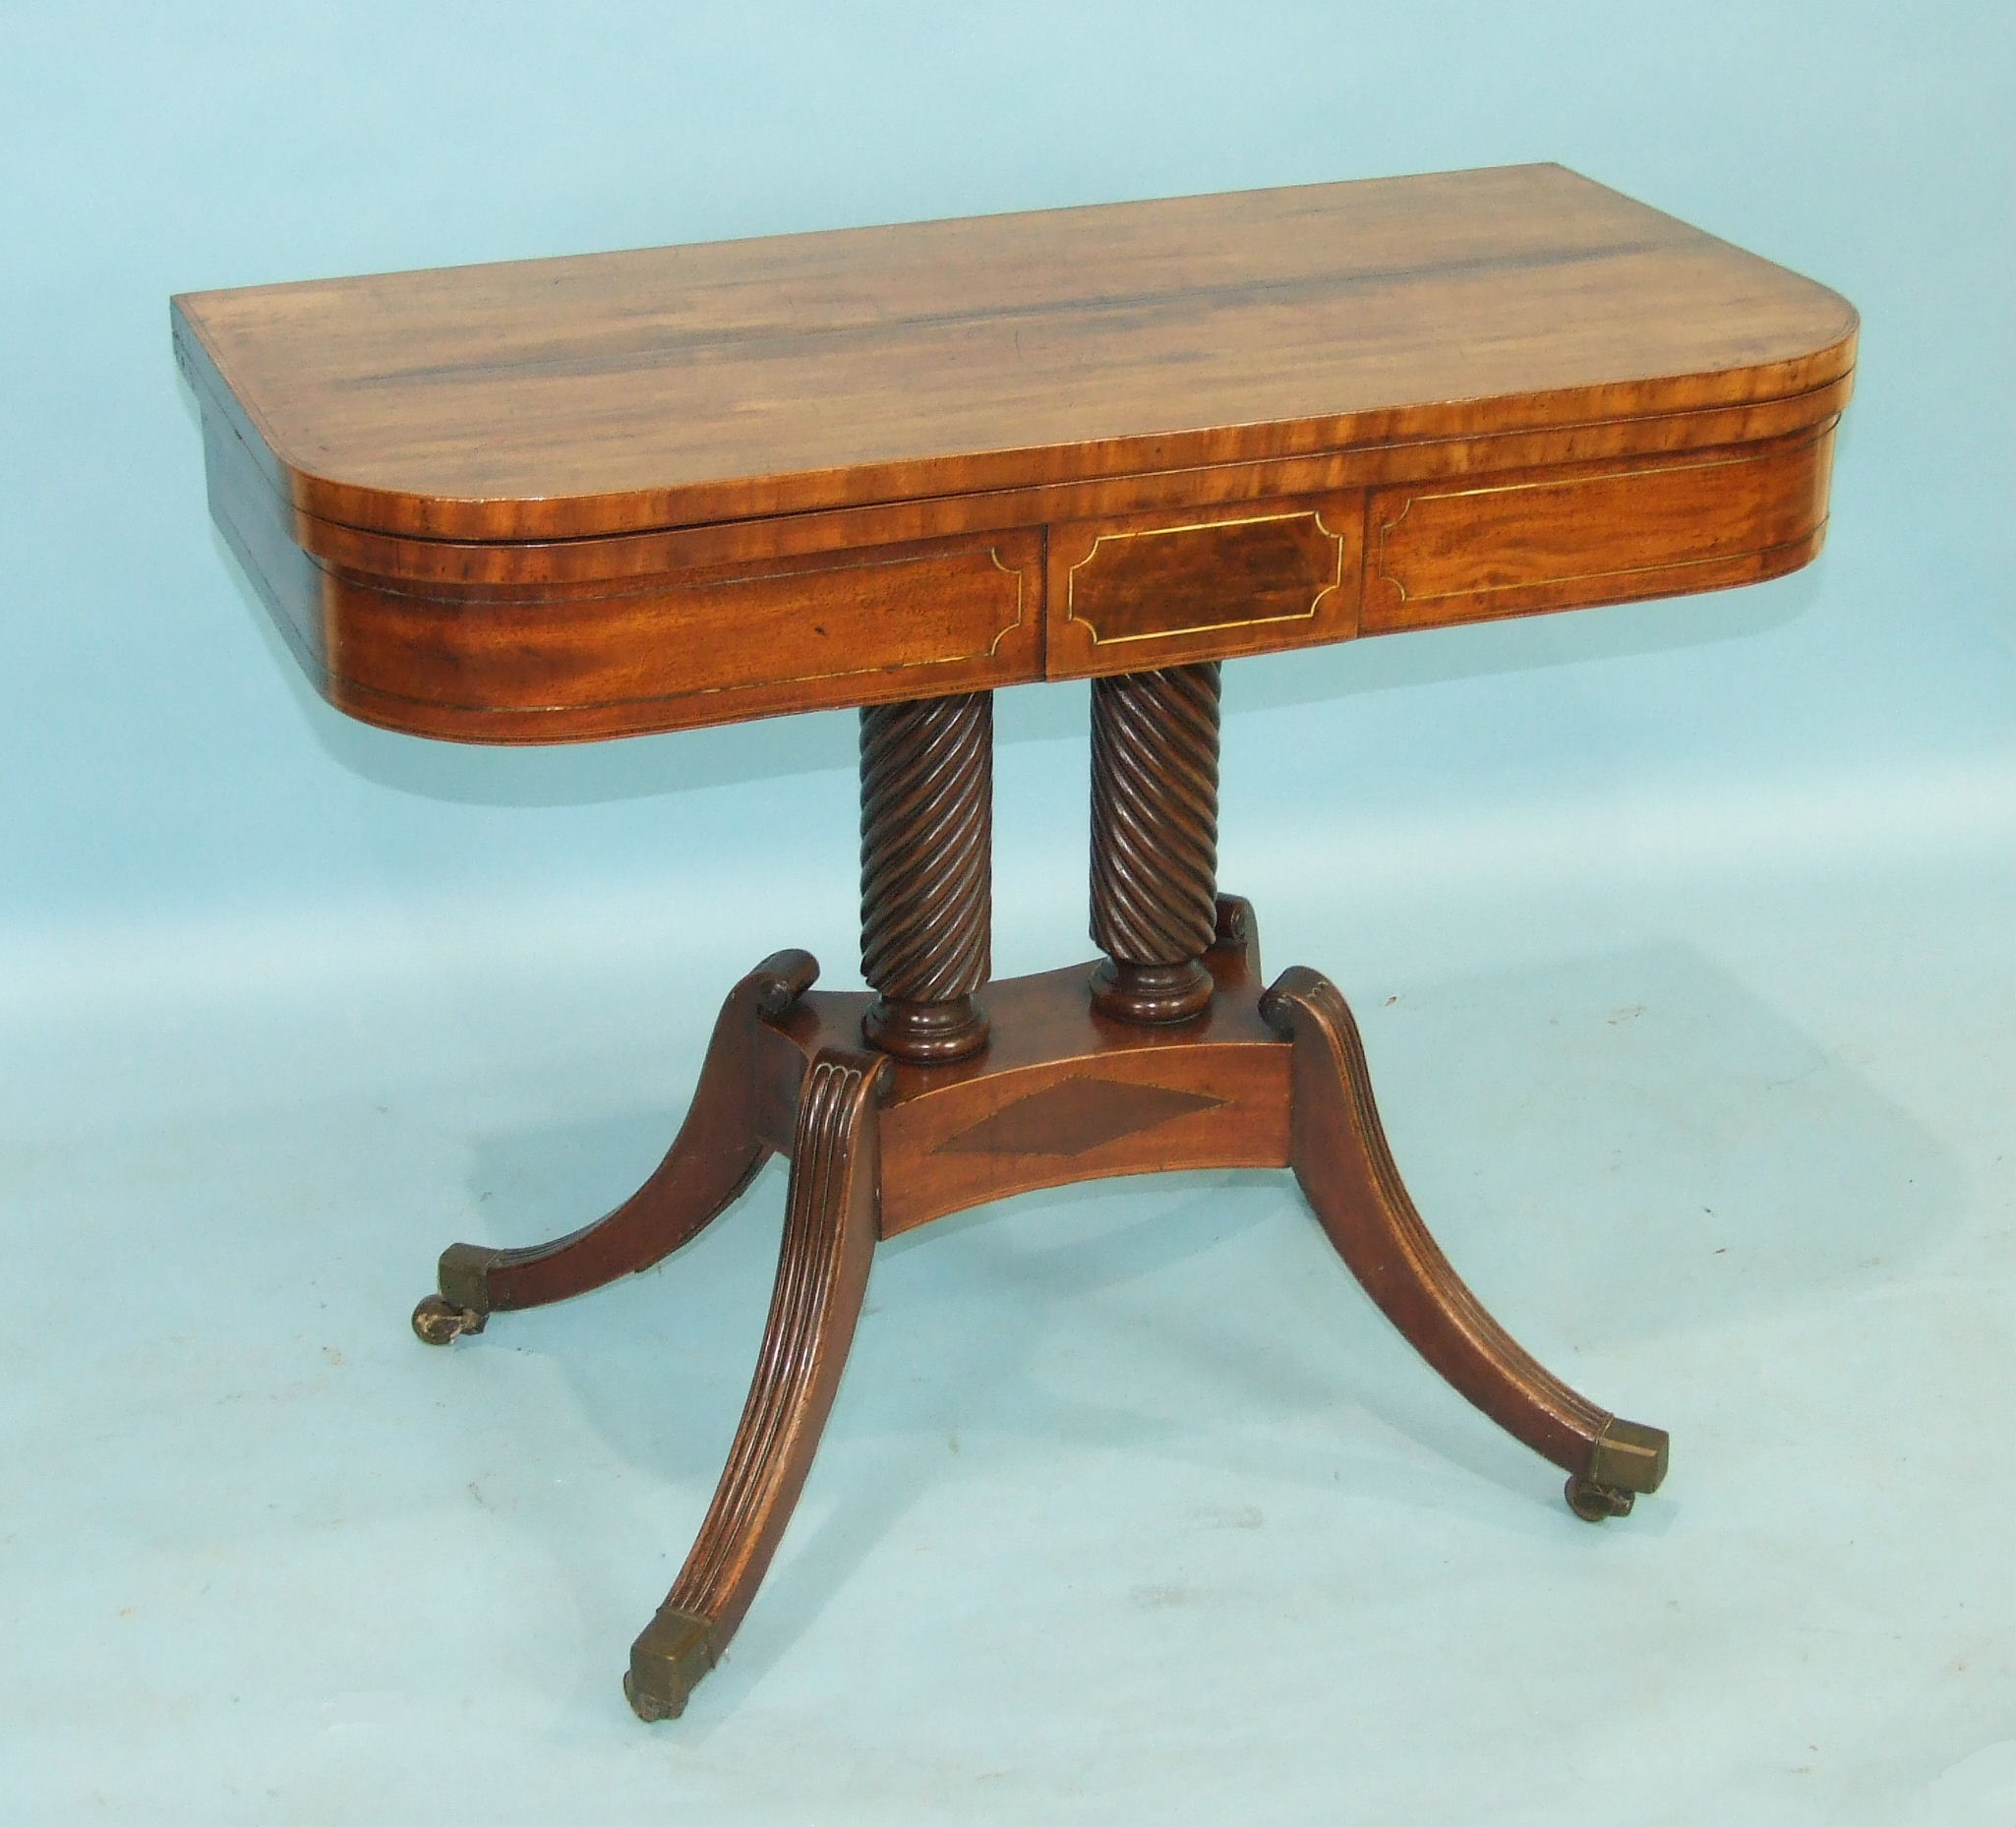 Lot 76 - A Regency mahogany fold-over card table, the baize-lined top above a brass-inlaid frieze, raised